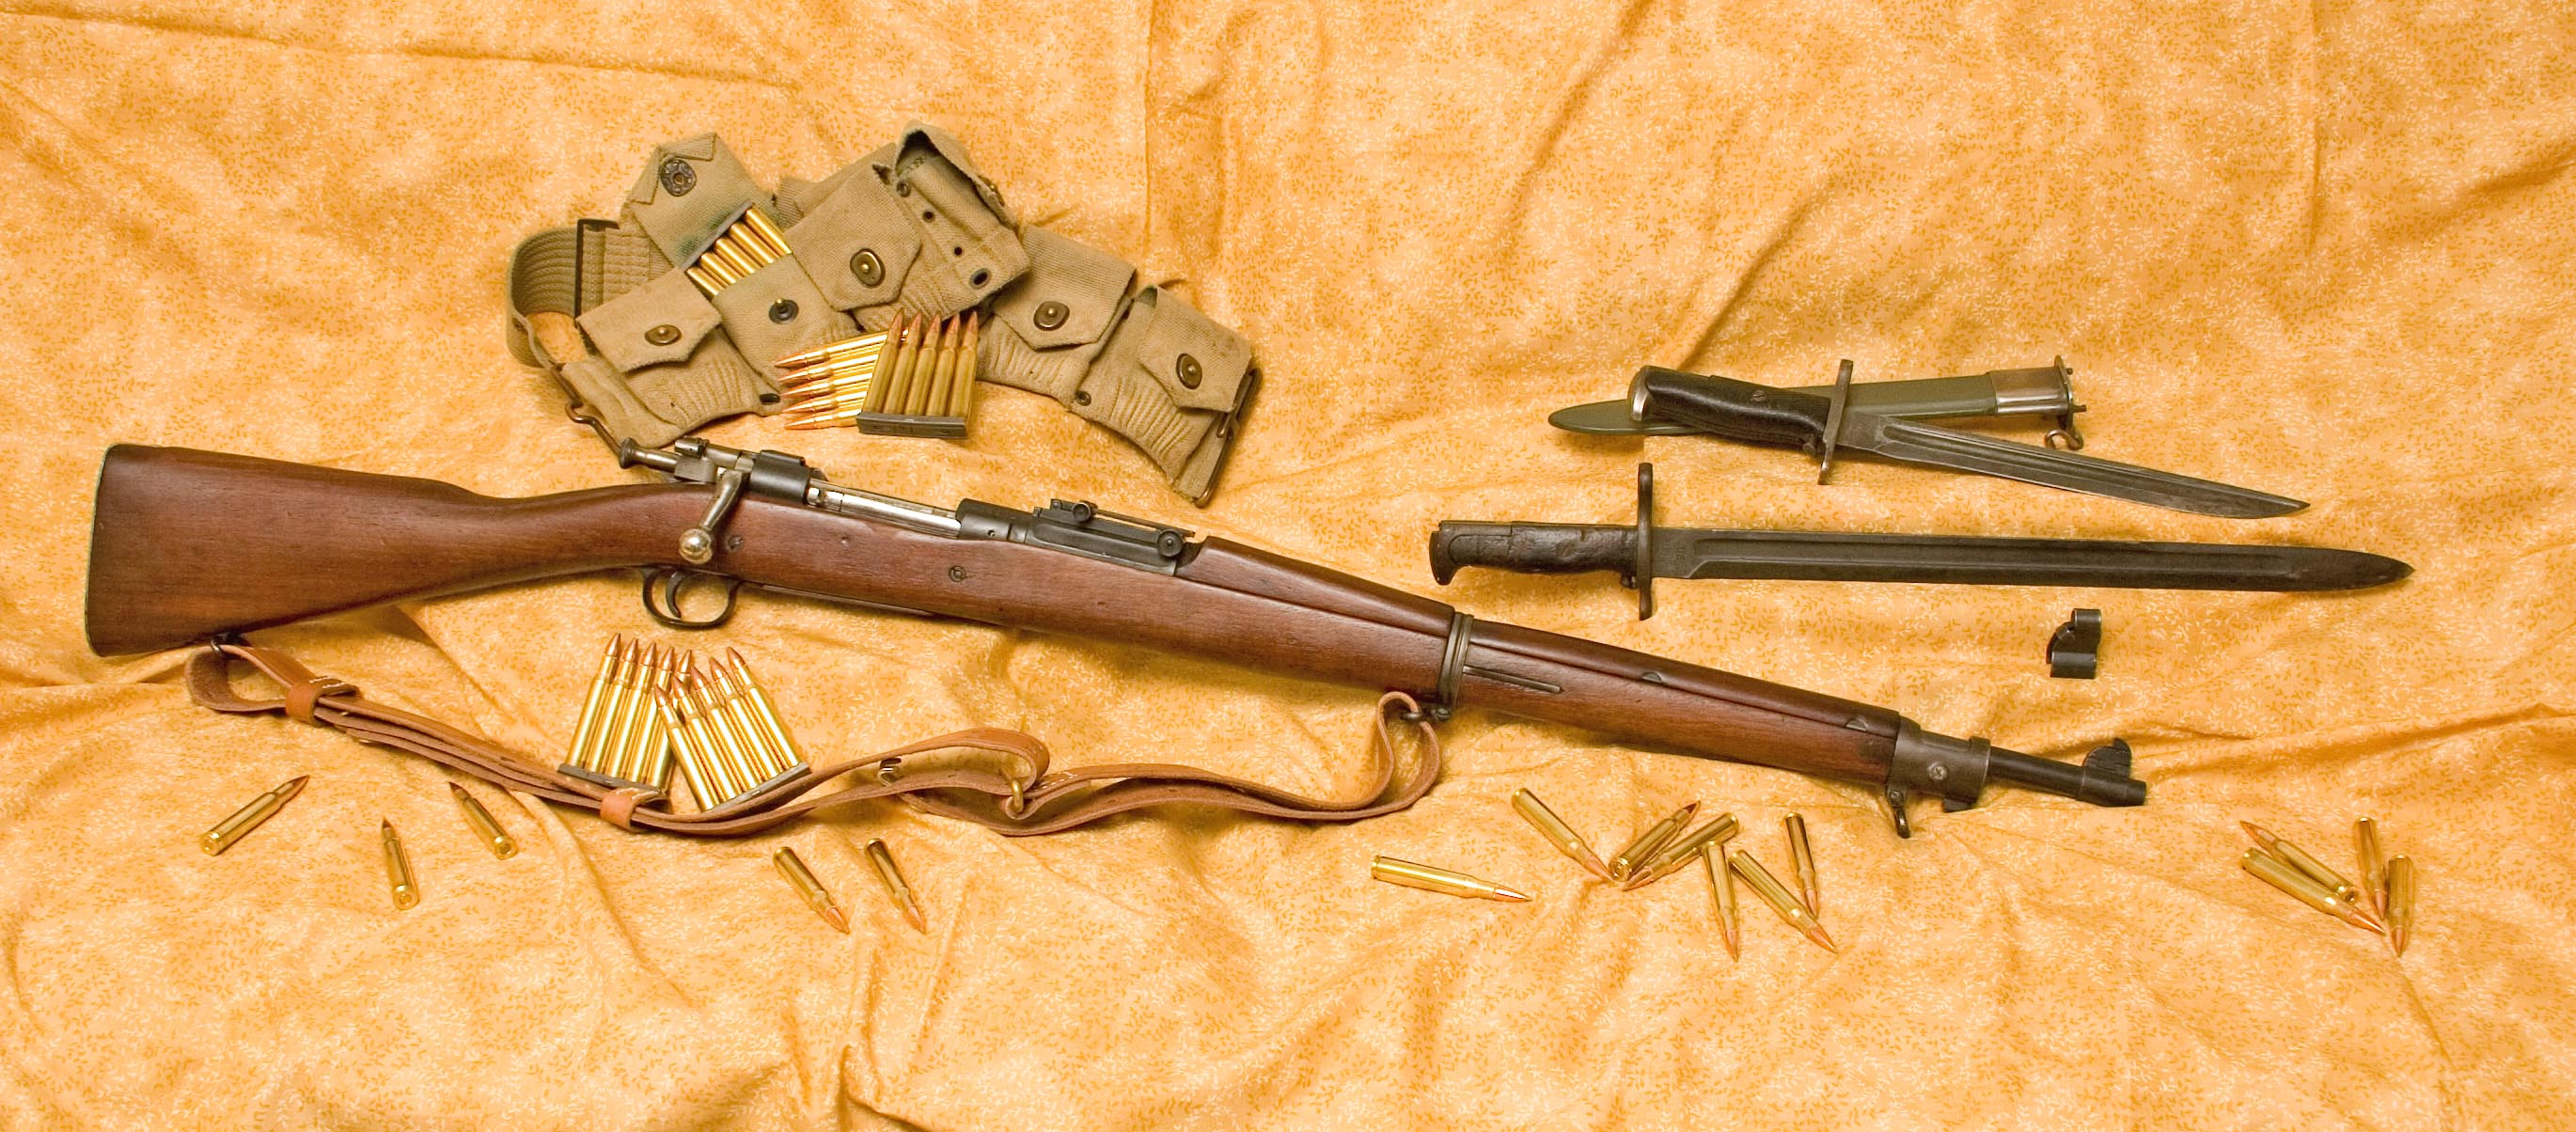 M1903 Springfield Rifle Backgrounds on Wallpapers Vista